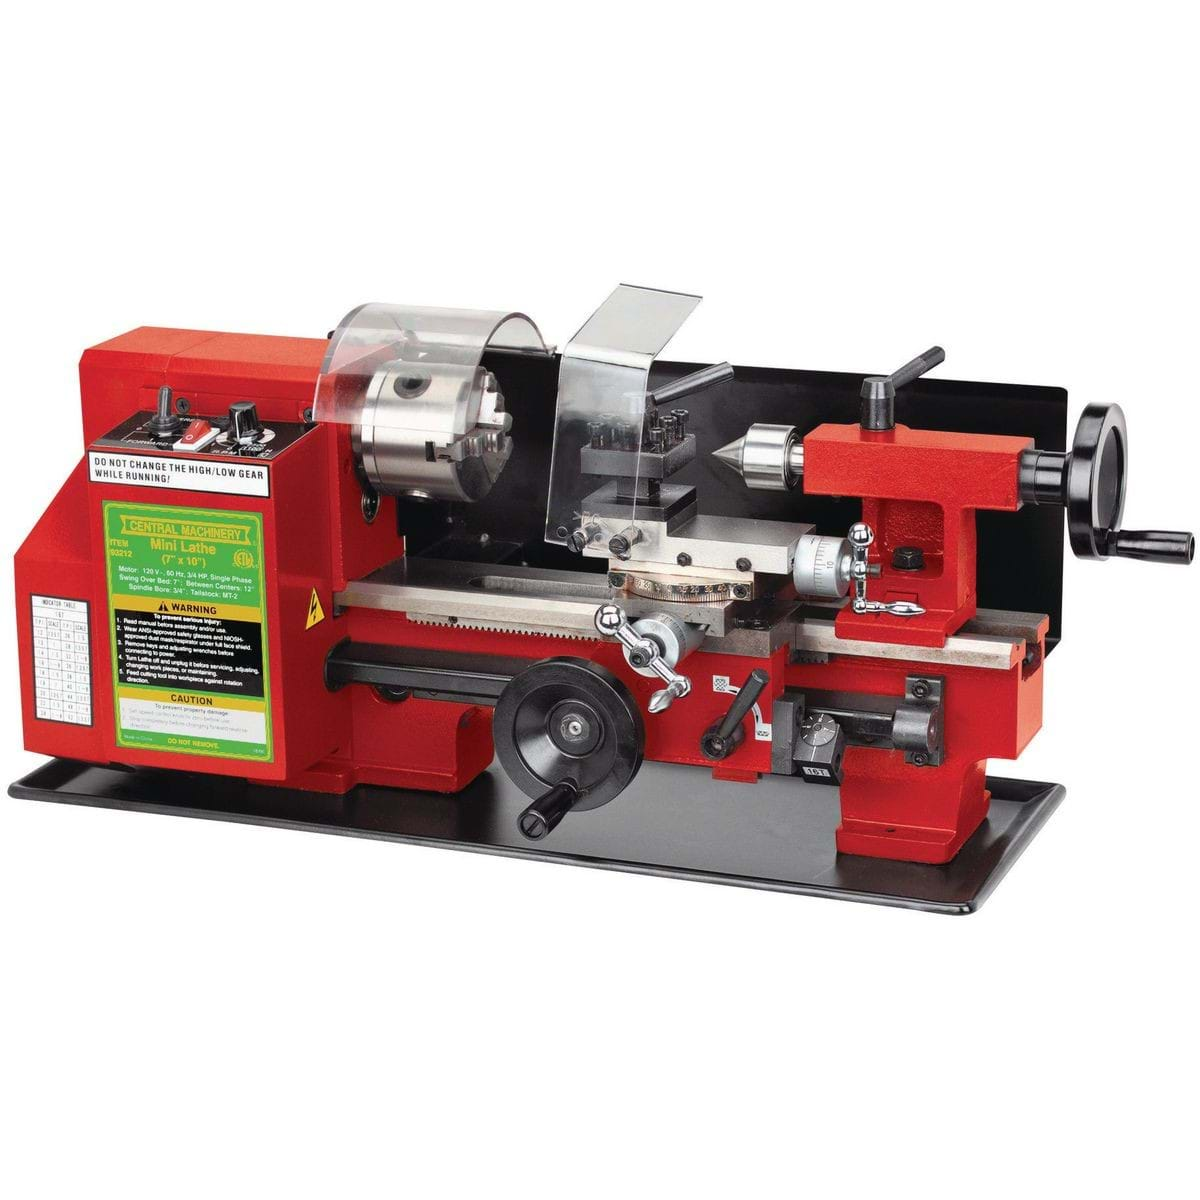 A red lathe machine